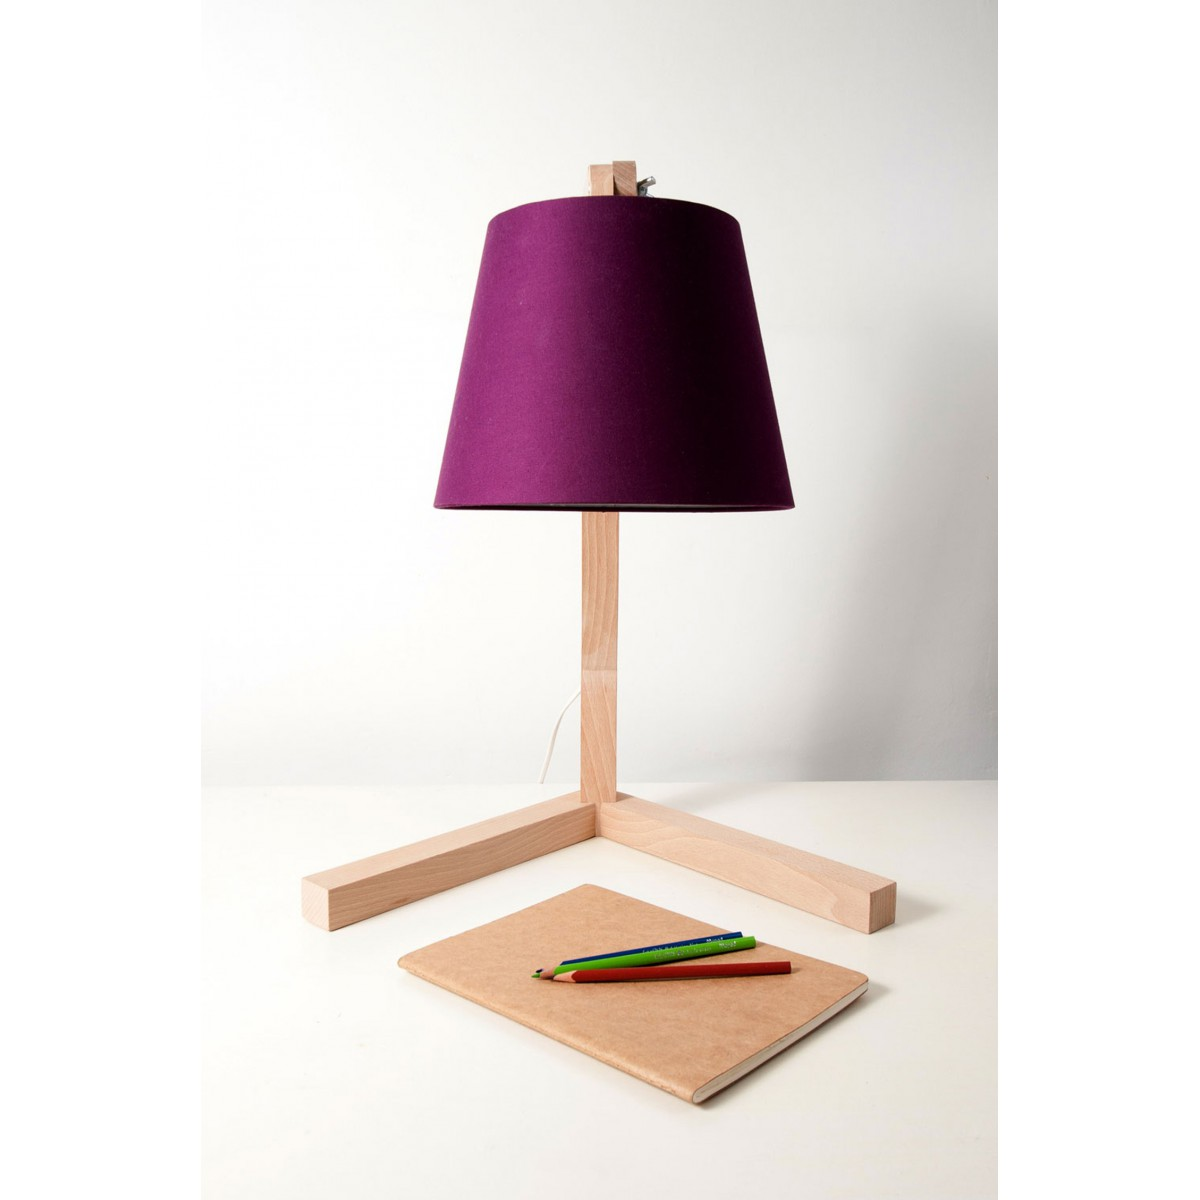 lampe sur pied design scandinave en bois oud s sign e bellila. Black Bedroom Furniture Sets. Home Design Ideas